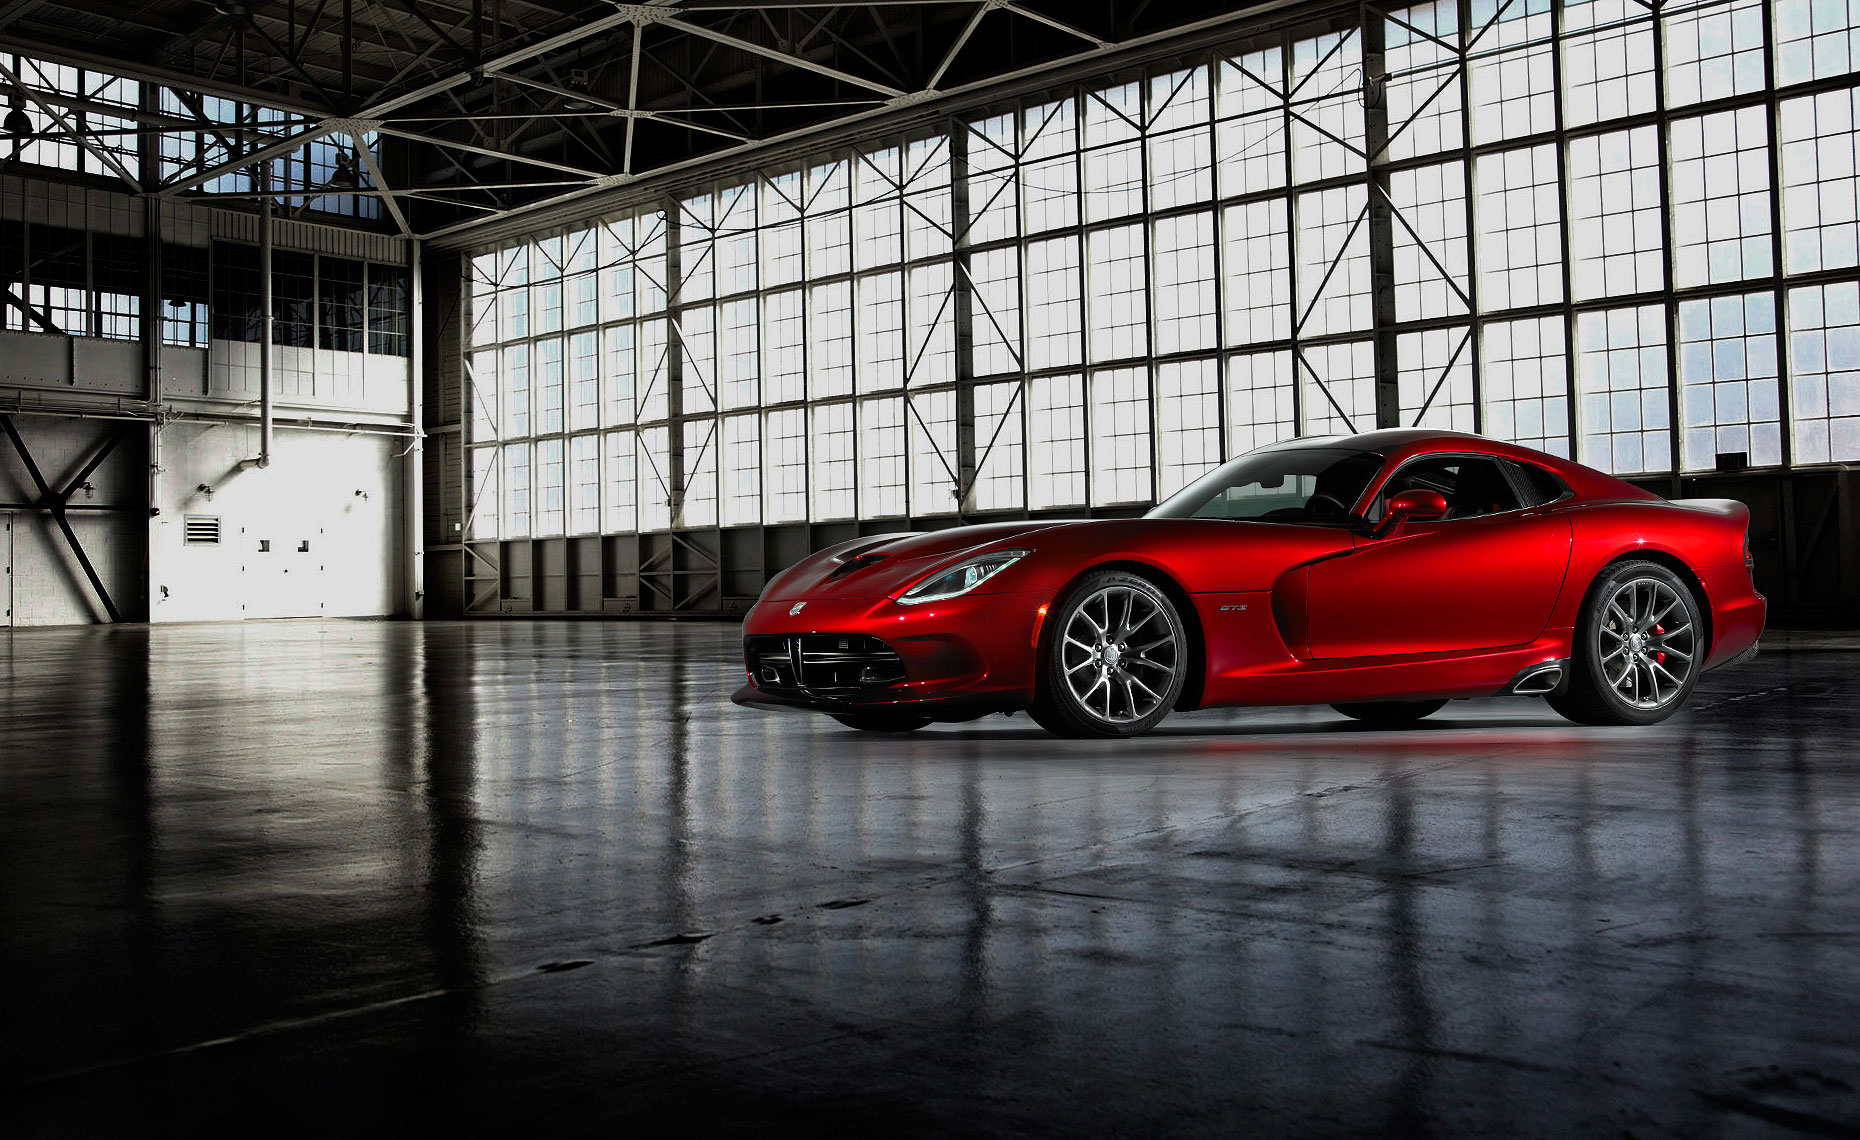 2013_viper_srt_warehouse.jpg